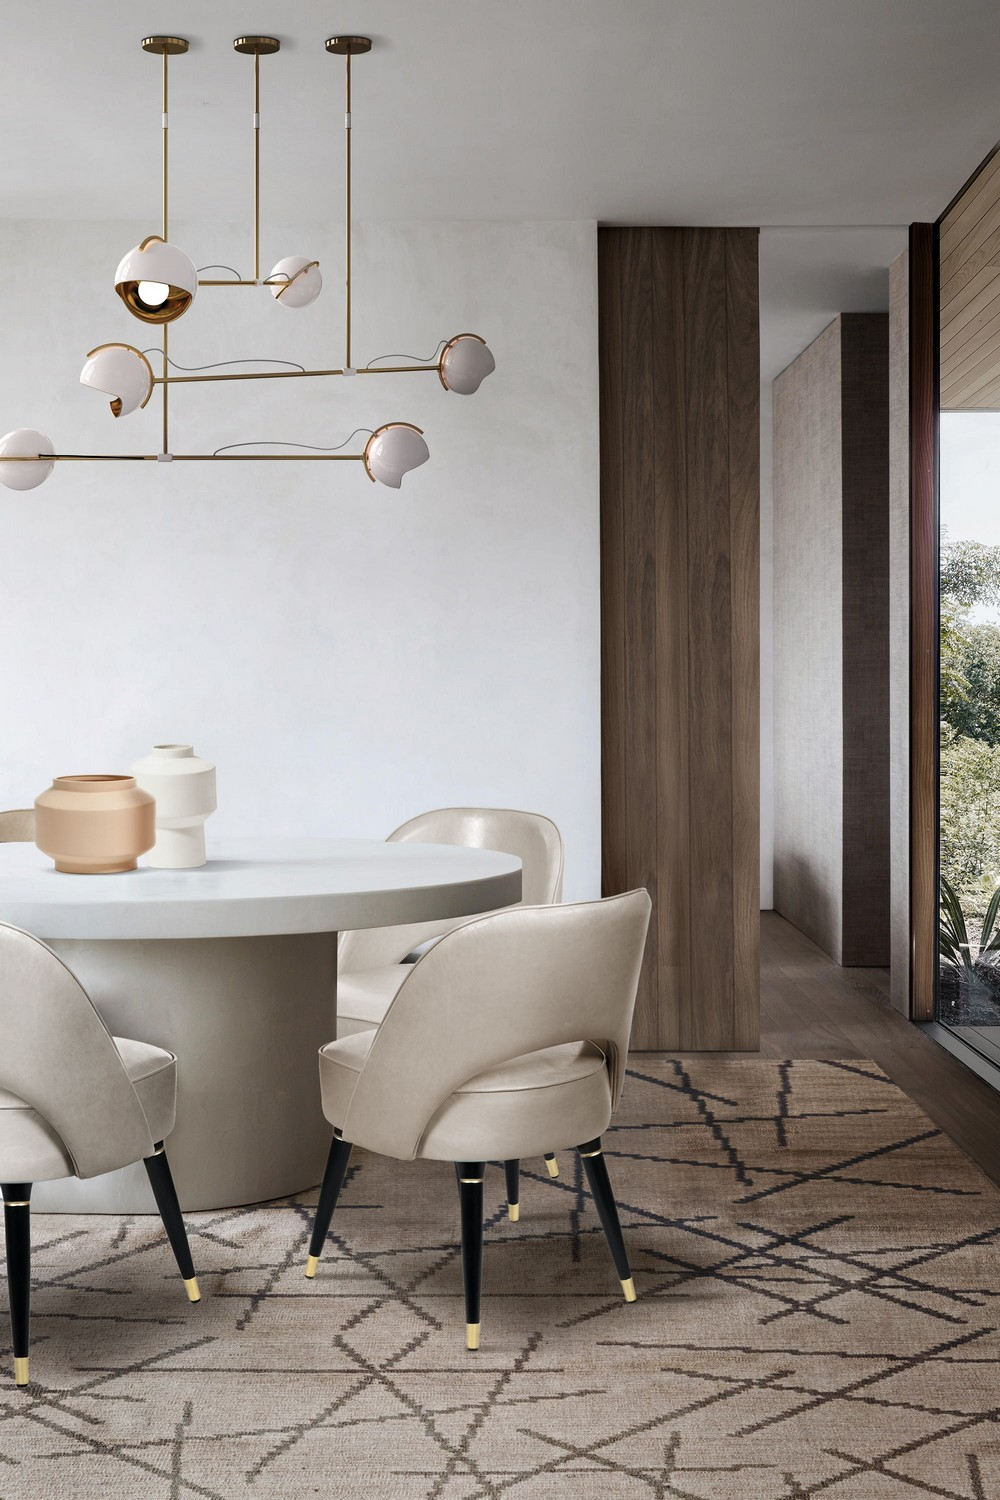 7 Rules For A Mid-century Dining Room With A Contemporary Twist mid-century dining room 7 Rules For A Mid-century Dining Room With A Contemporary Twist clean simple shapes of the design have a timeless quality that still feels current